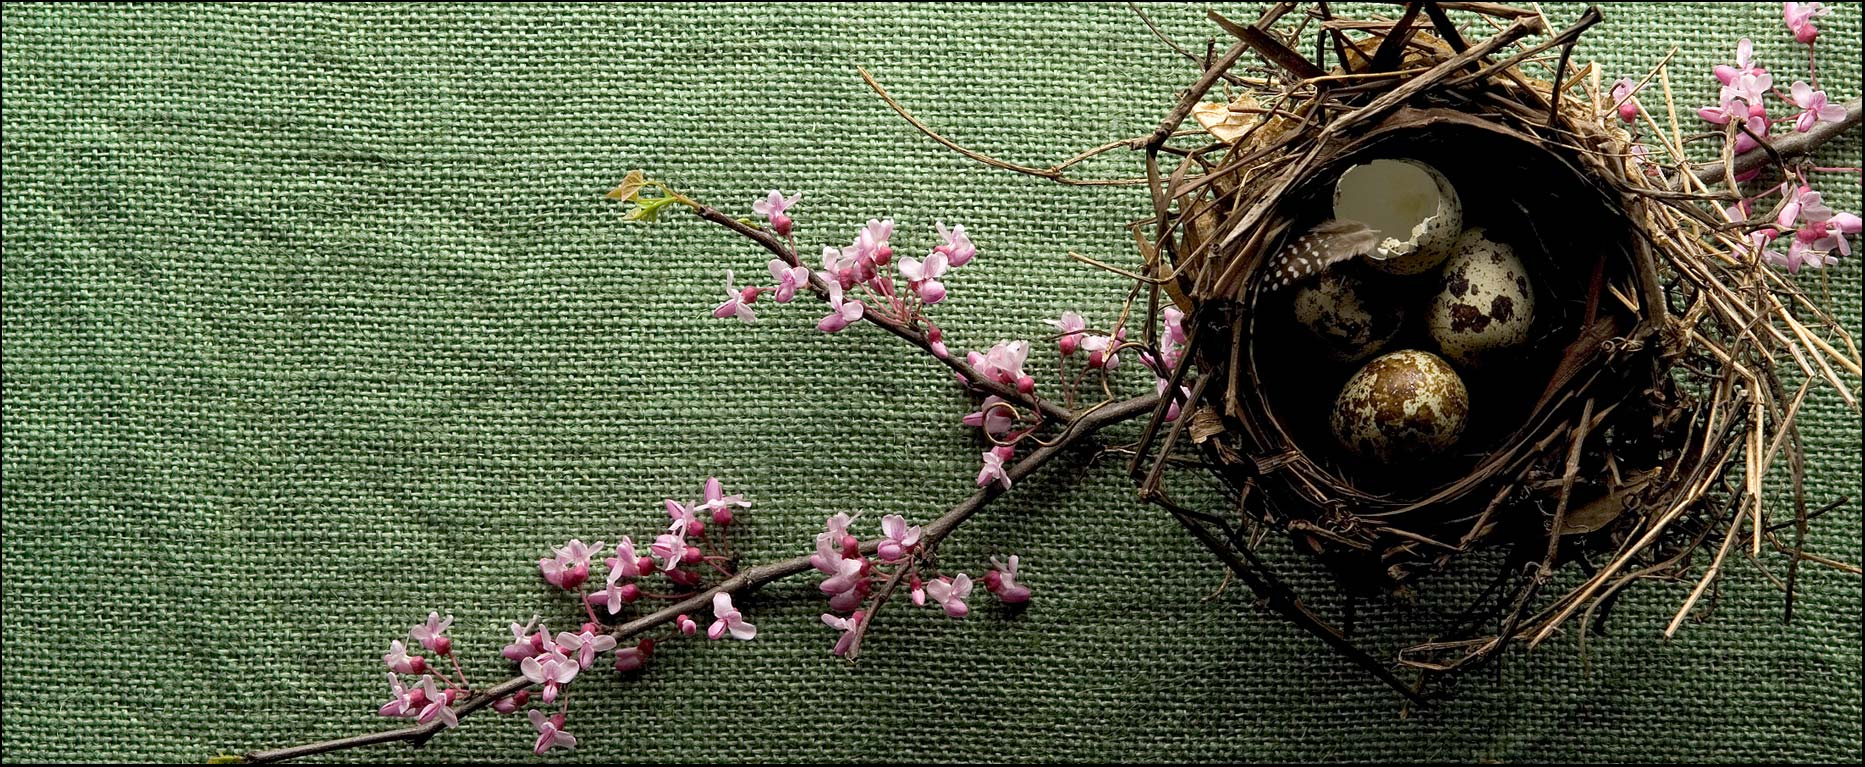 Birds nest with flowers and bird eggs on a textured green burlap background